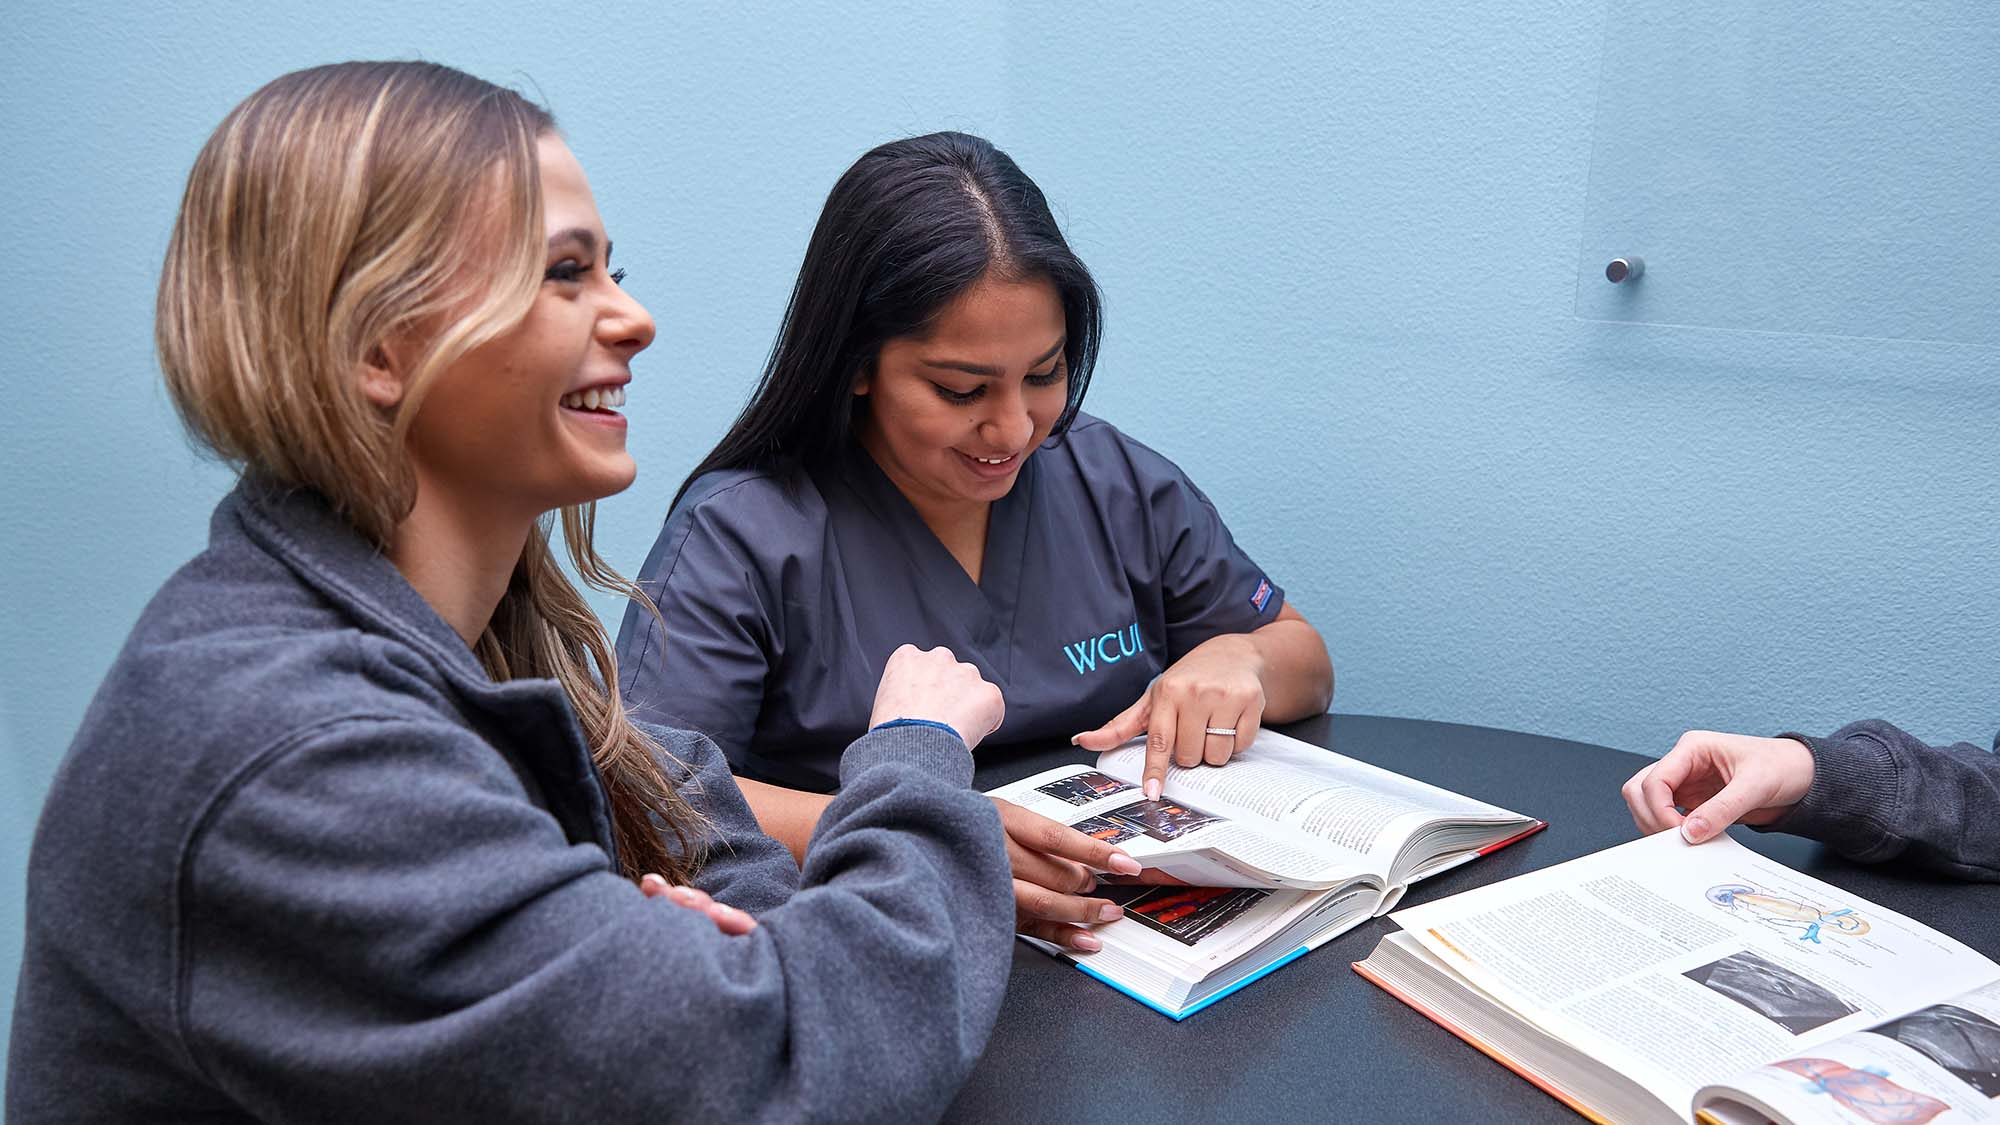 WCUI Nursing Students Studying Course Material Together